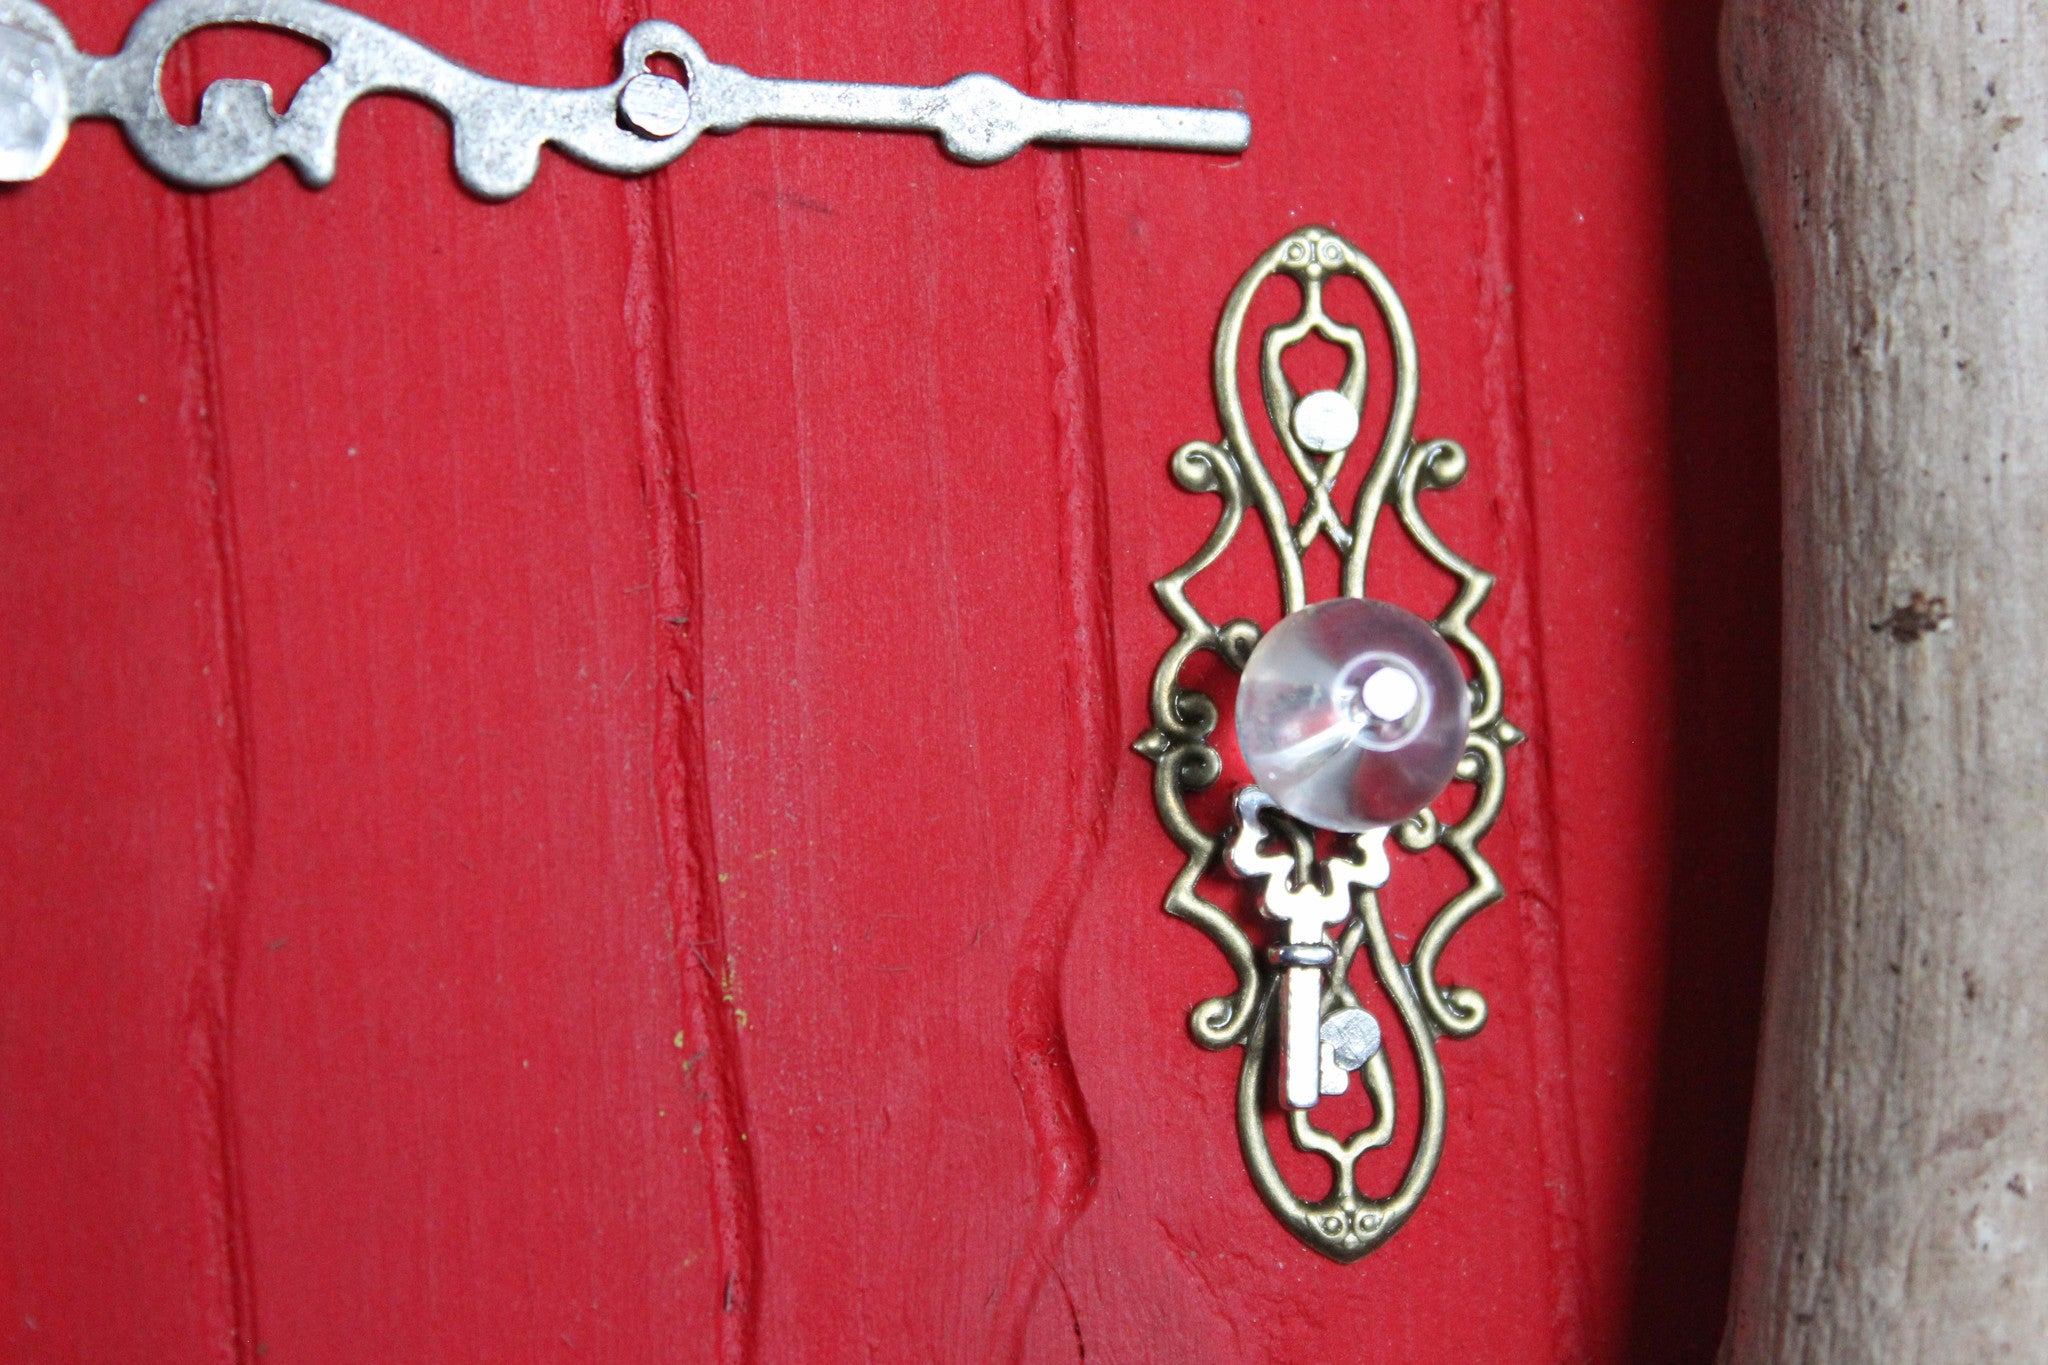 Ladybug red fairy door, doorknob